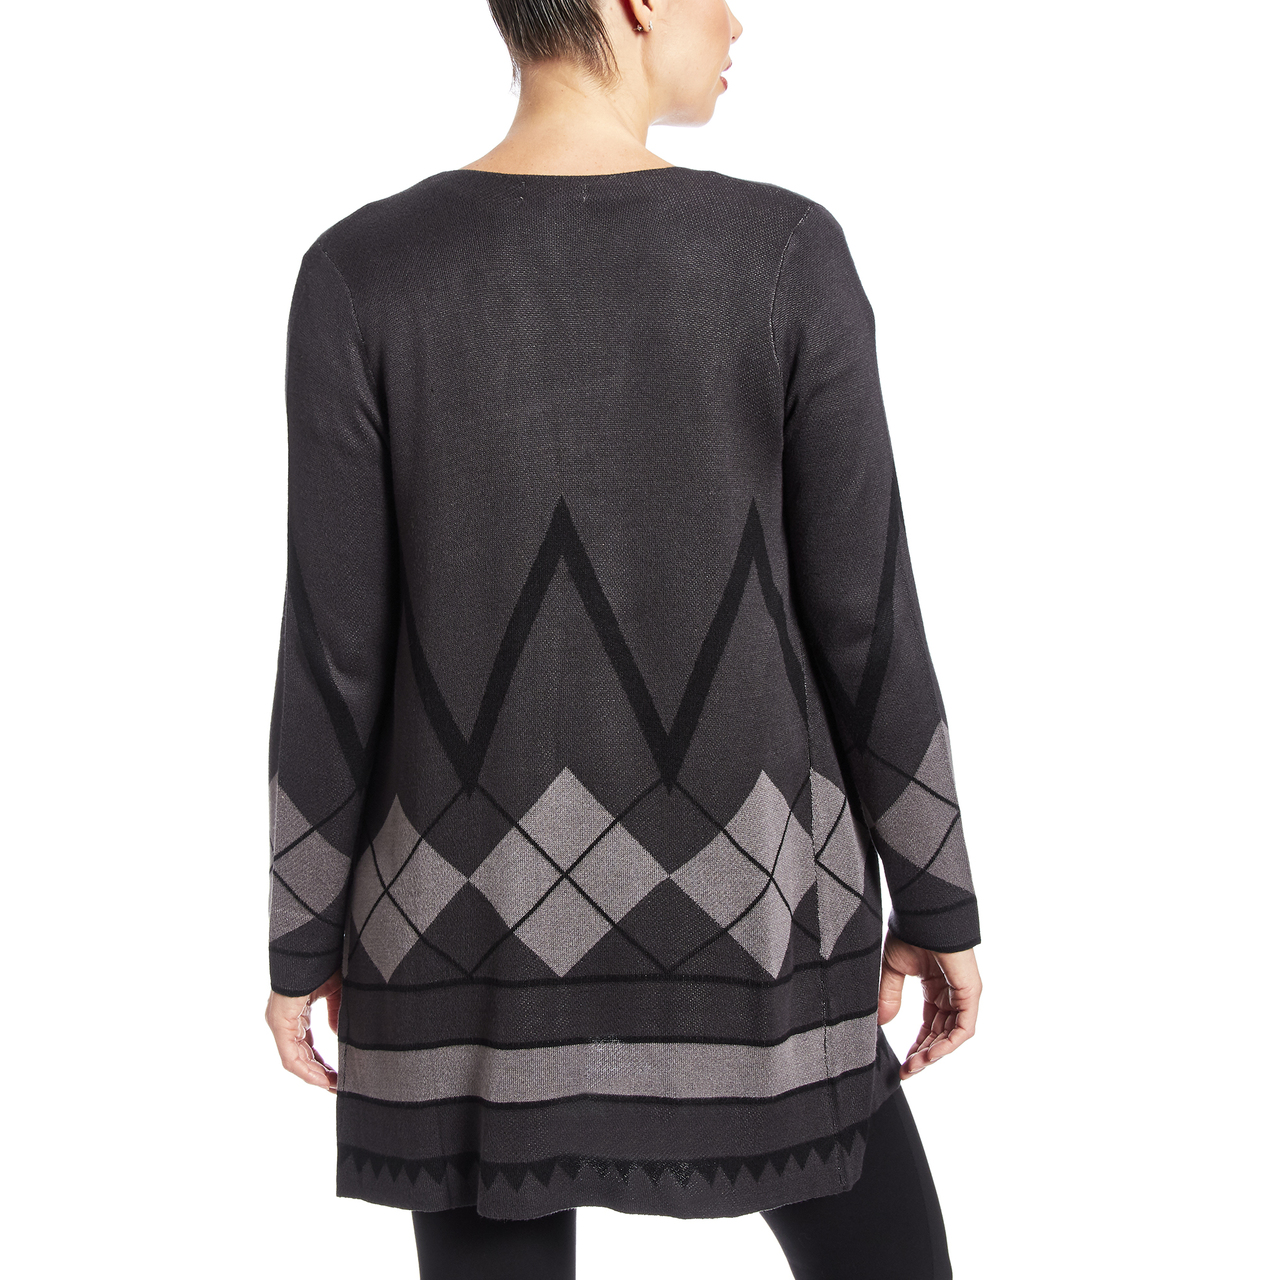 Two Pocket Duster With Argyle Pattern In Charcoal Heather